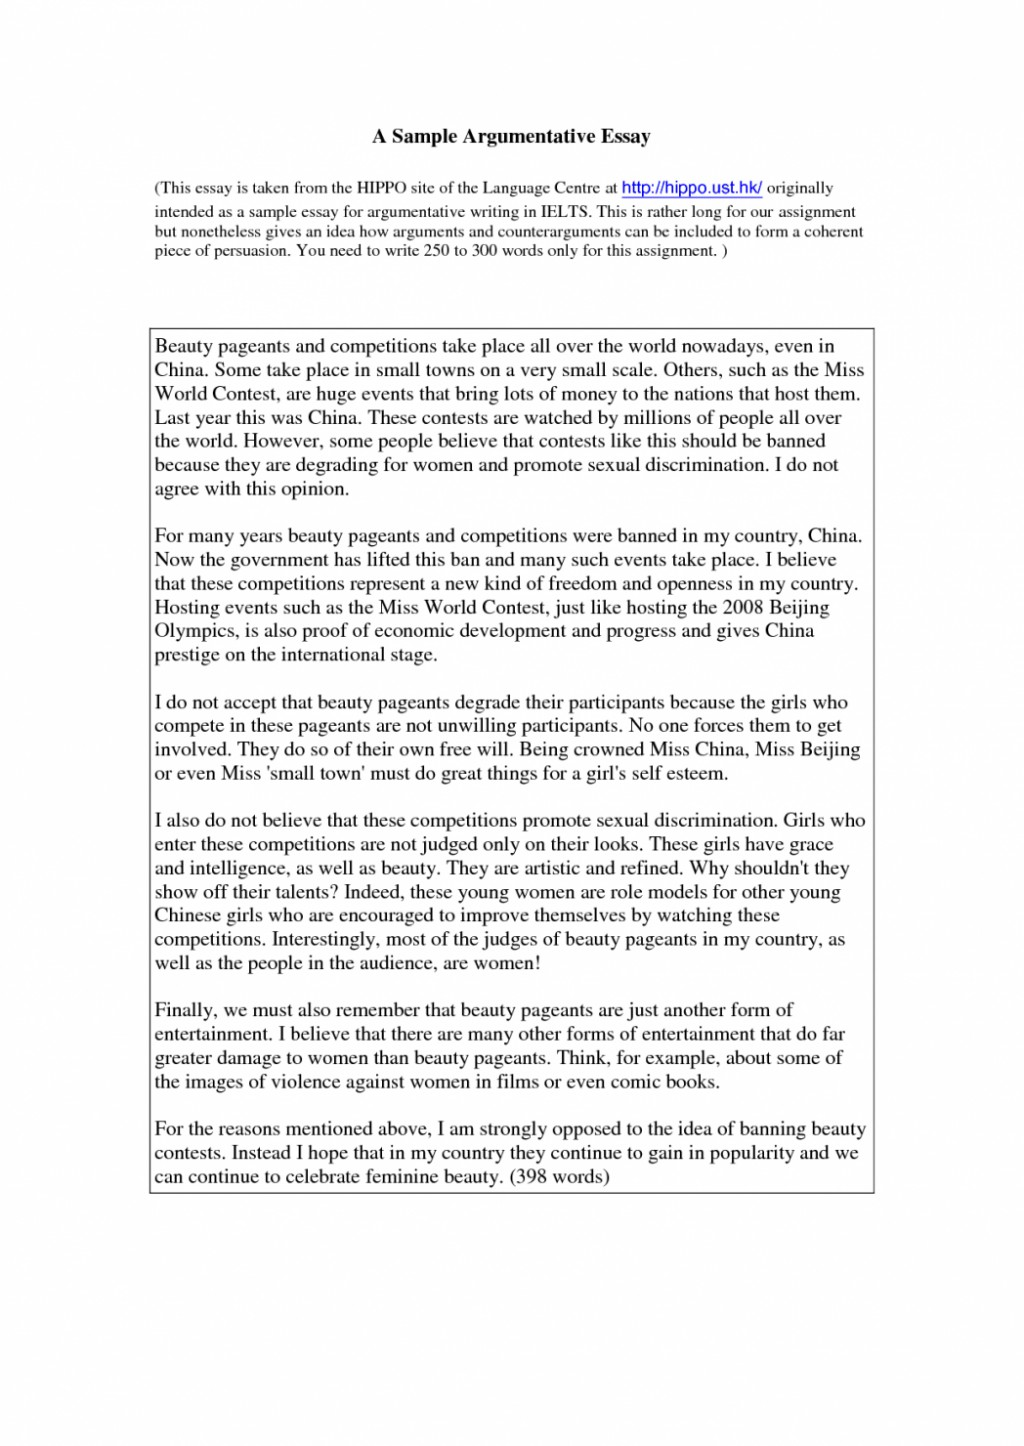 021 Write An Argumentative Essay How To Writing Skills Who V3tgl Conclusion Introduction Outline Step By Ppt Middle School Pdf Example Ap Lang Surprising Sample In Which You State And Defend Large